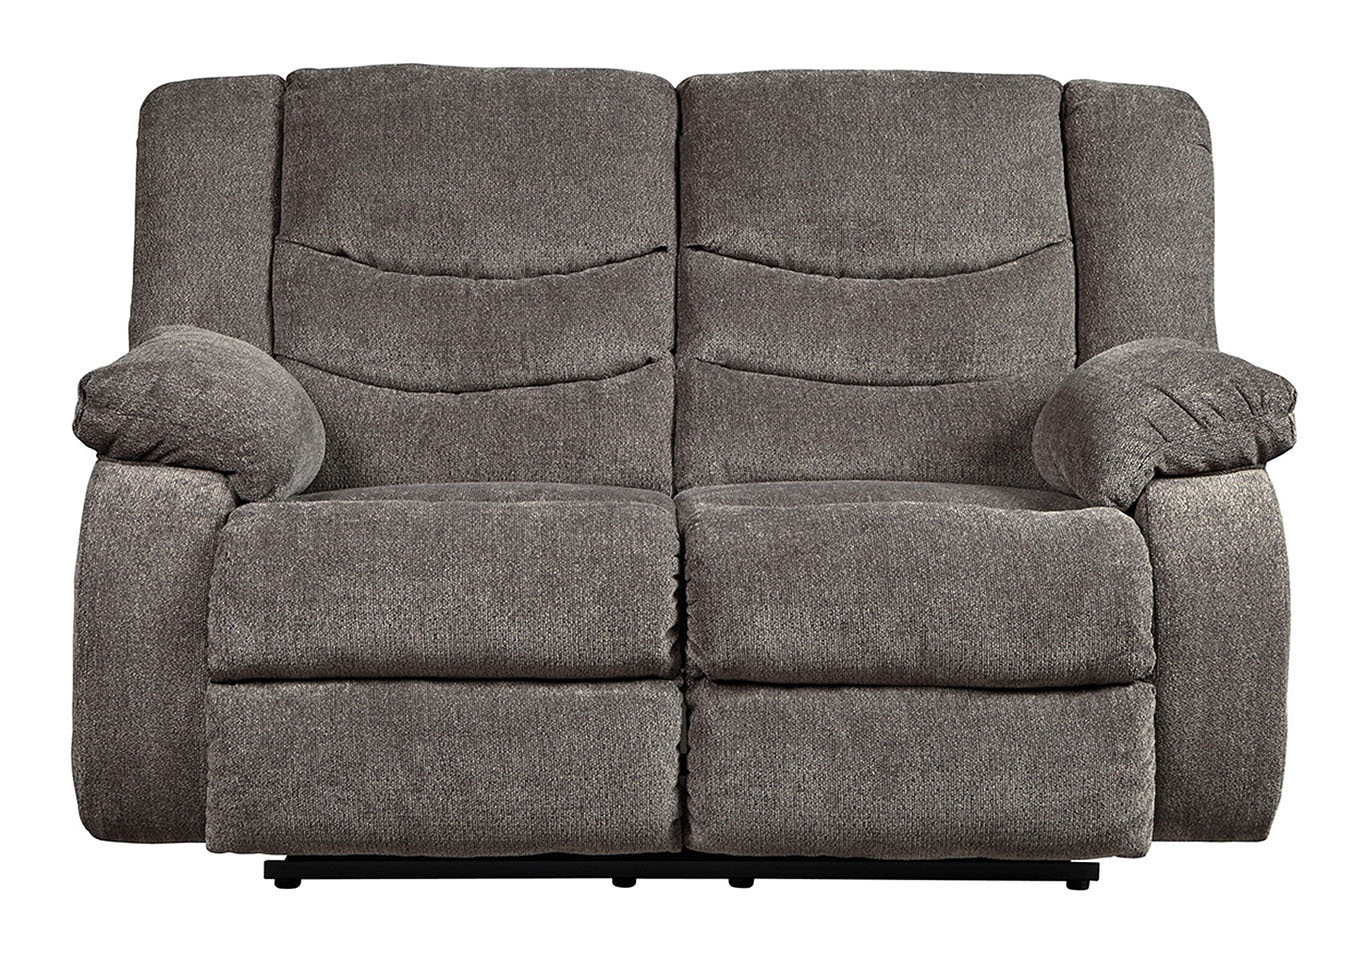 Tulen Gray Reclining Loveseat,Signature Design By Ashley